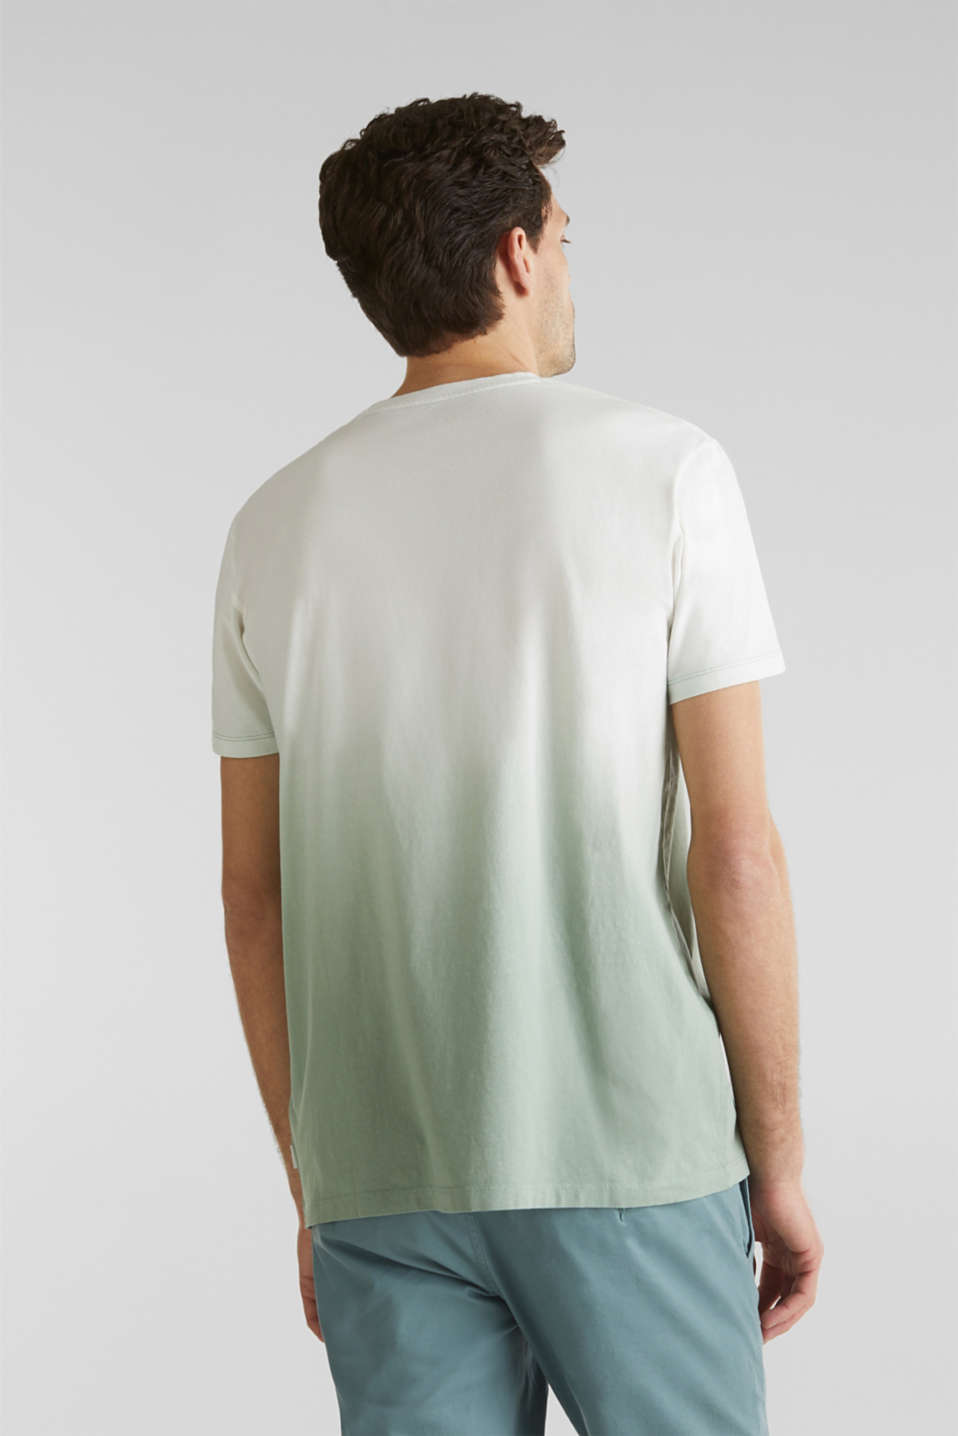 Jersey T-shirt with graduated colours, 100% cotton, TEAL GREEN 2, detail image number 3